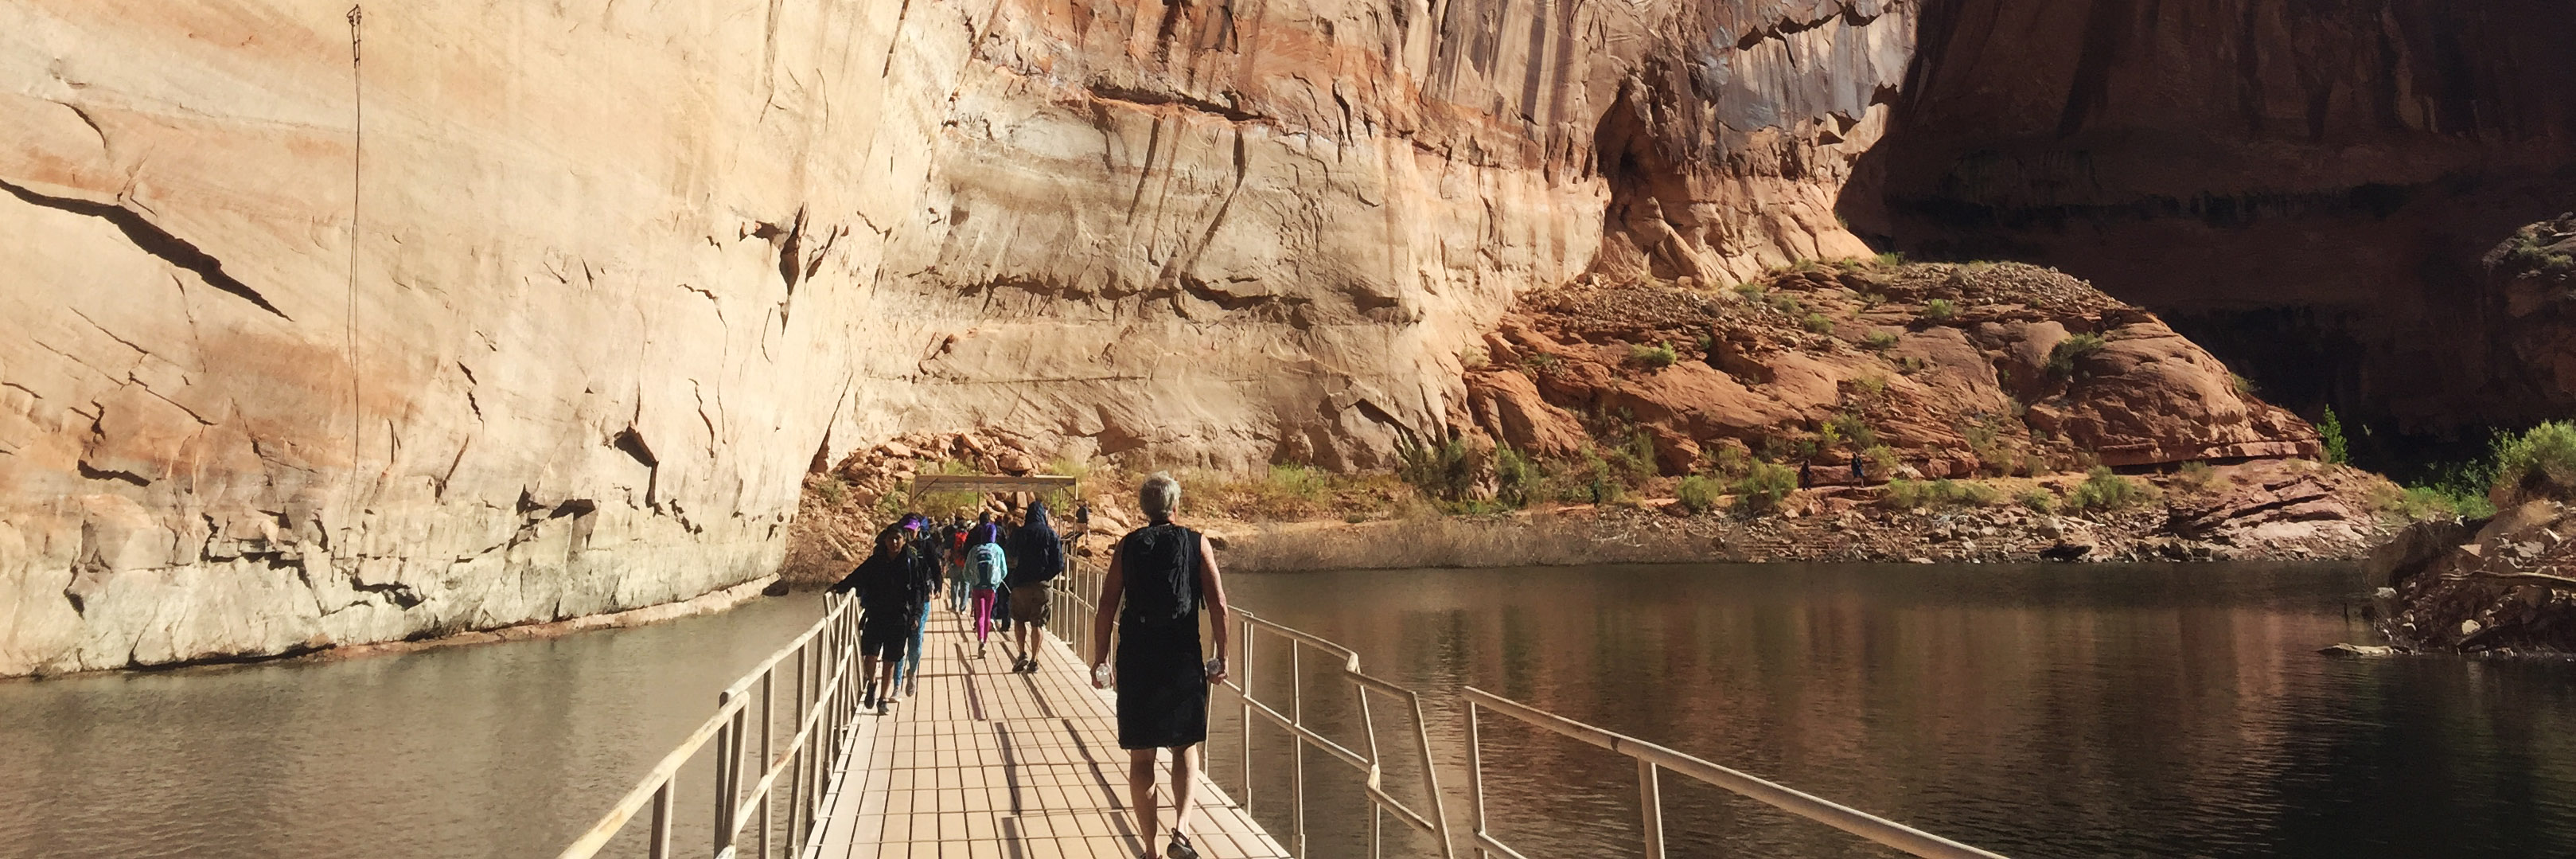 Join Life's Incredible Journey - Walkway through Glen Canyon to Rainbow Bridge, Utah, Arizona Photo Credit: Wendy Nordvik-Carr